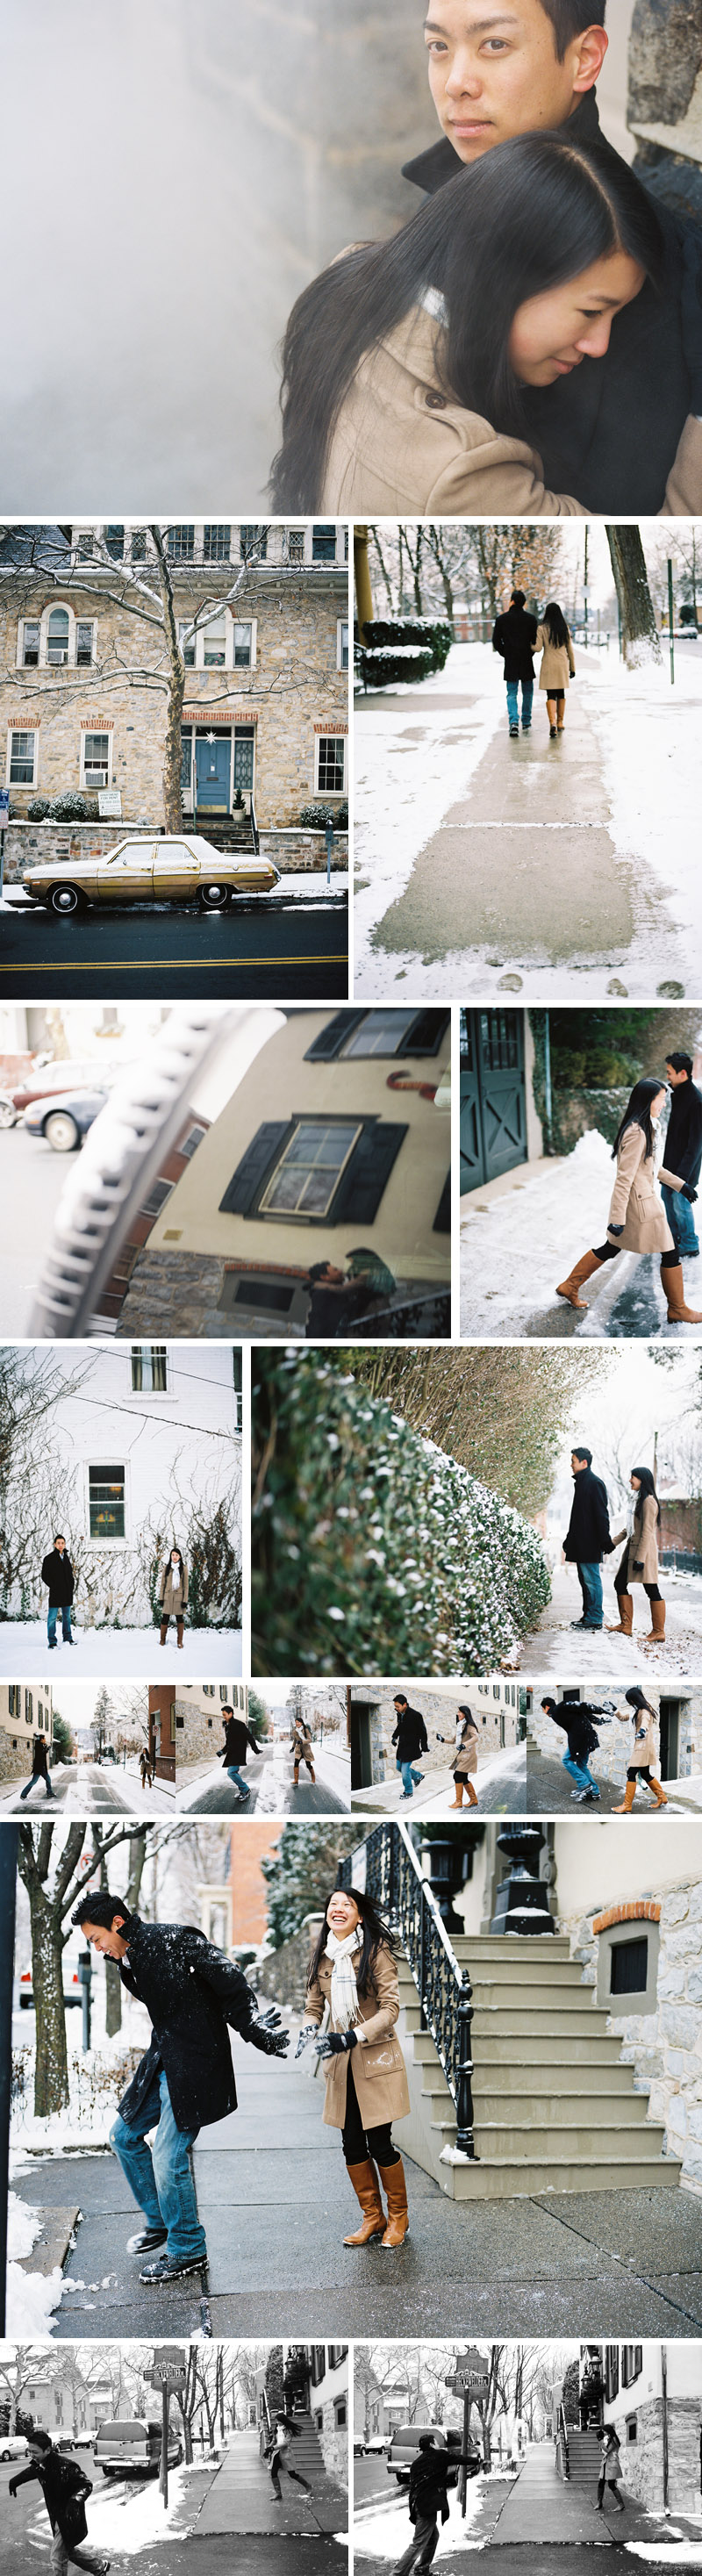 engagement session in historic downtown bethlehem by michael ash imagery